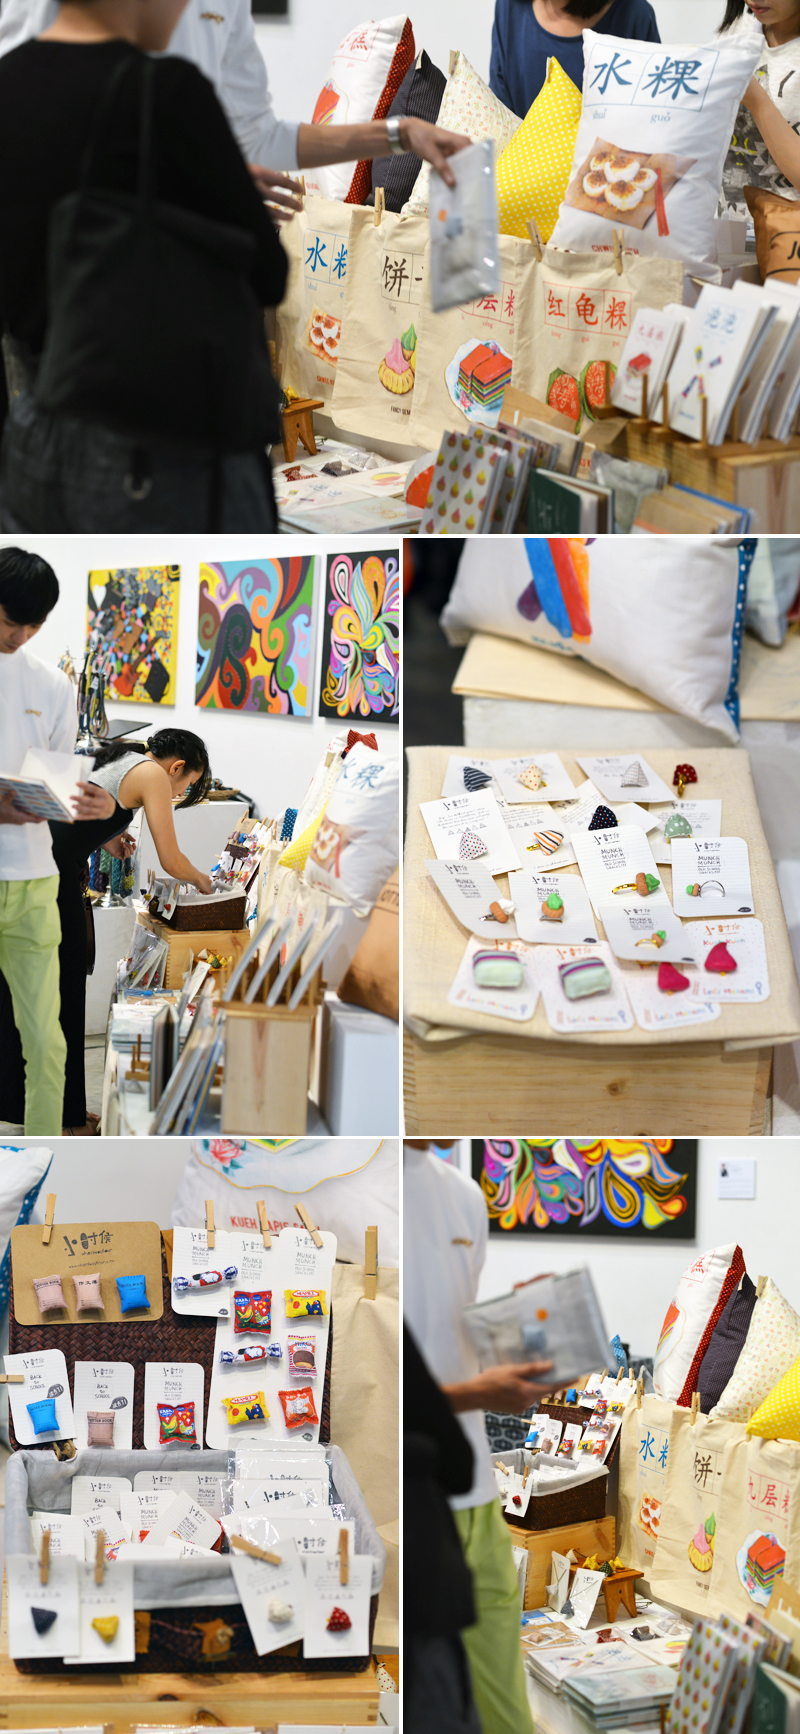 Inspiration Around Singapore [Art + Design Market] via Scissors Paper Stone www.scissorspaperstoneblog.com